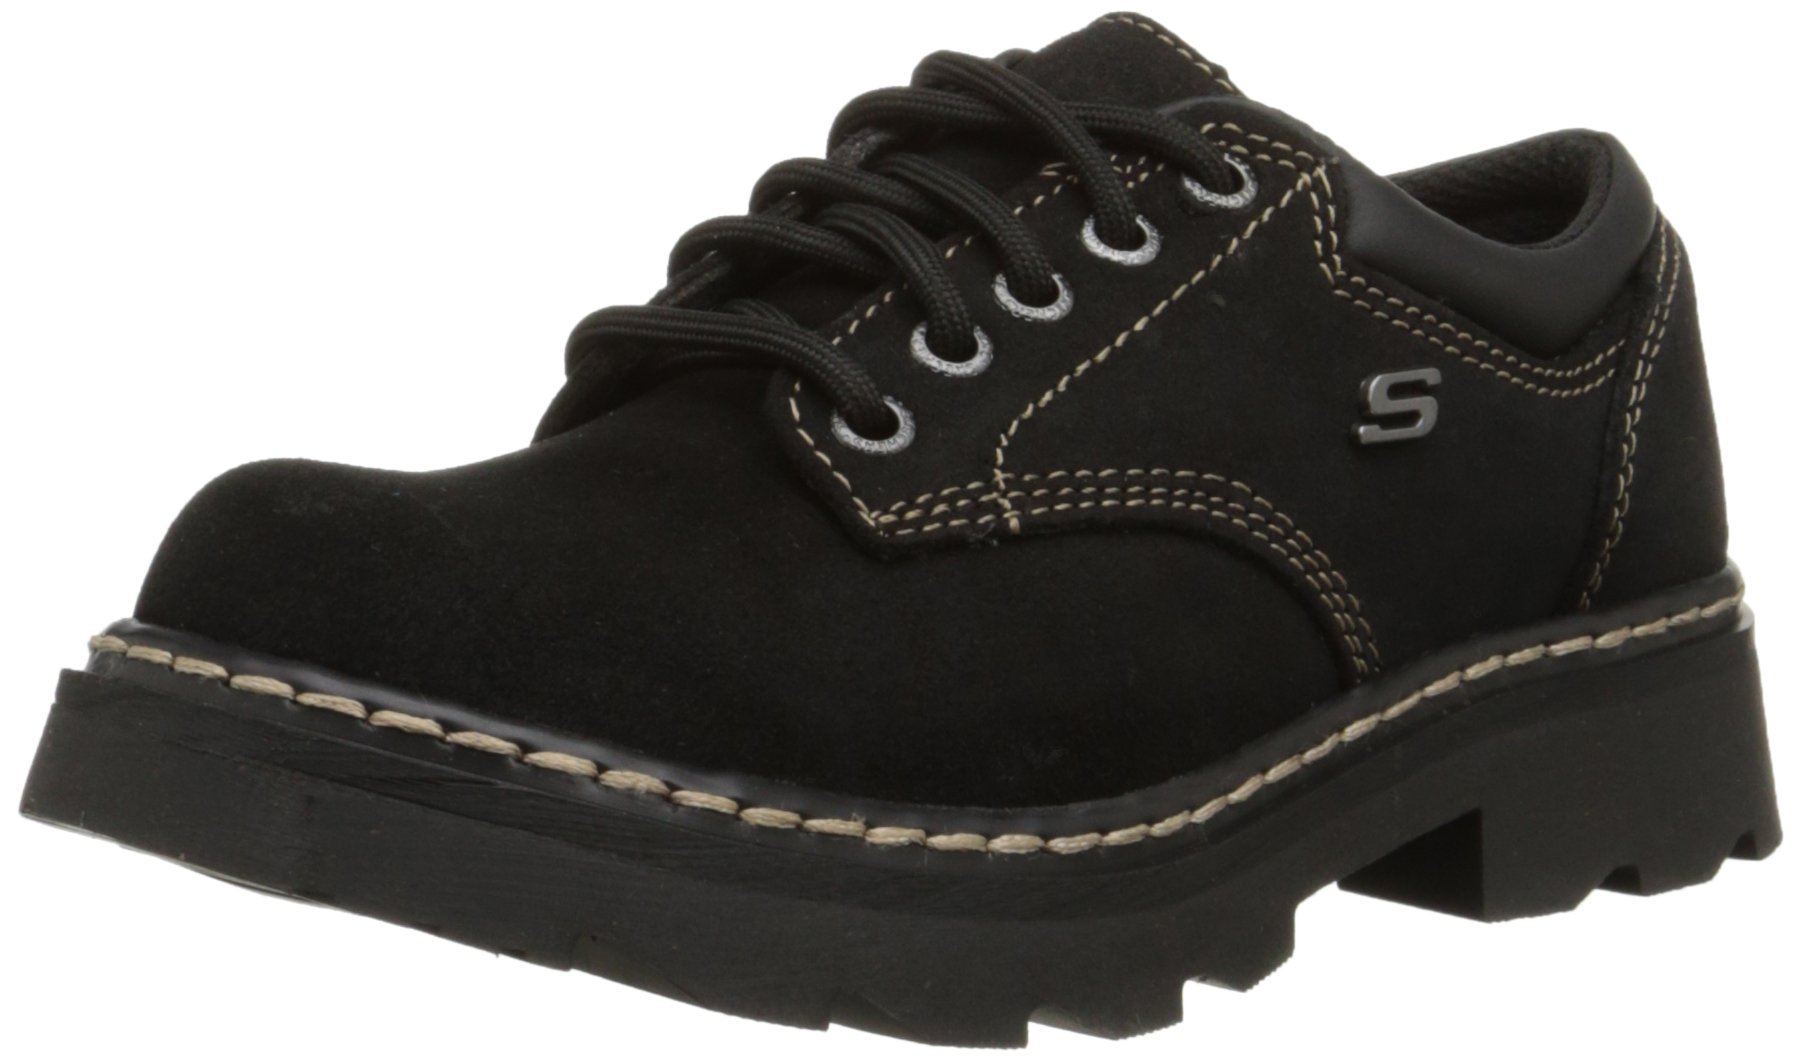 Skechers Women's Parties-Mate Oxford,Black Suede Leather,8.5 M US by Skechers